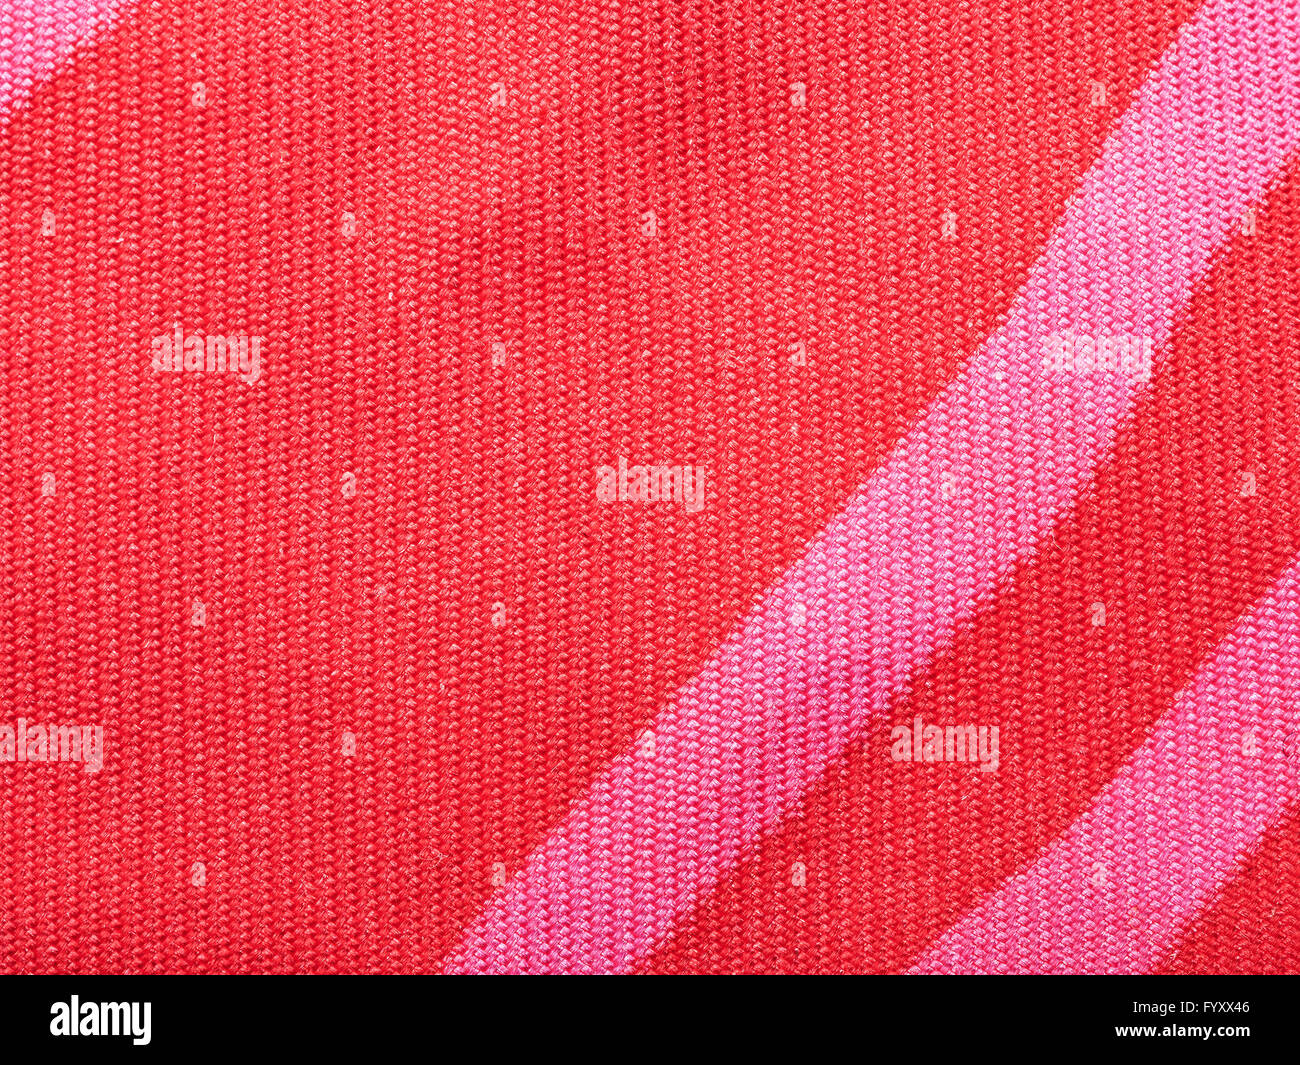 textile-background-red-silk-textile-with